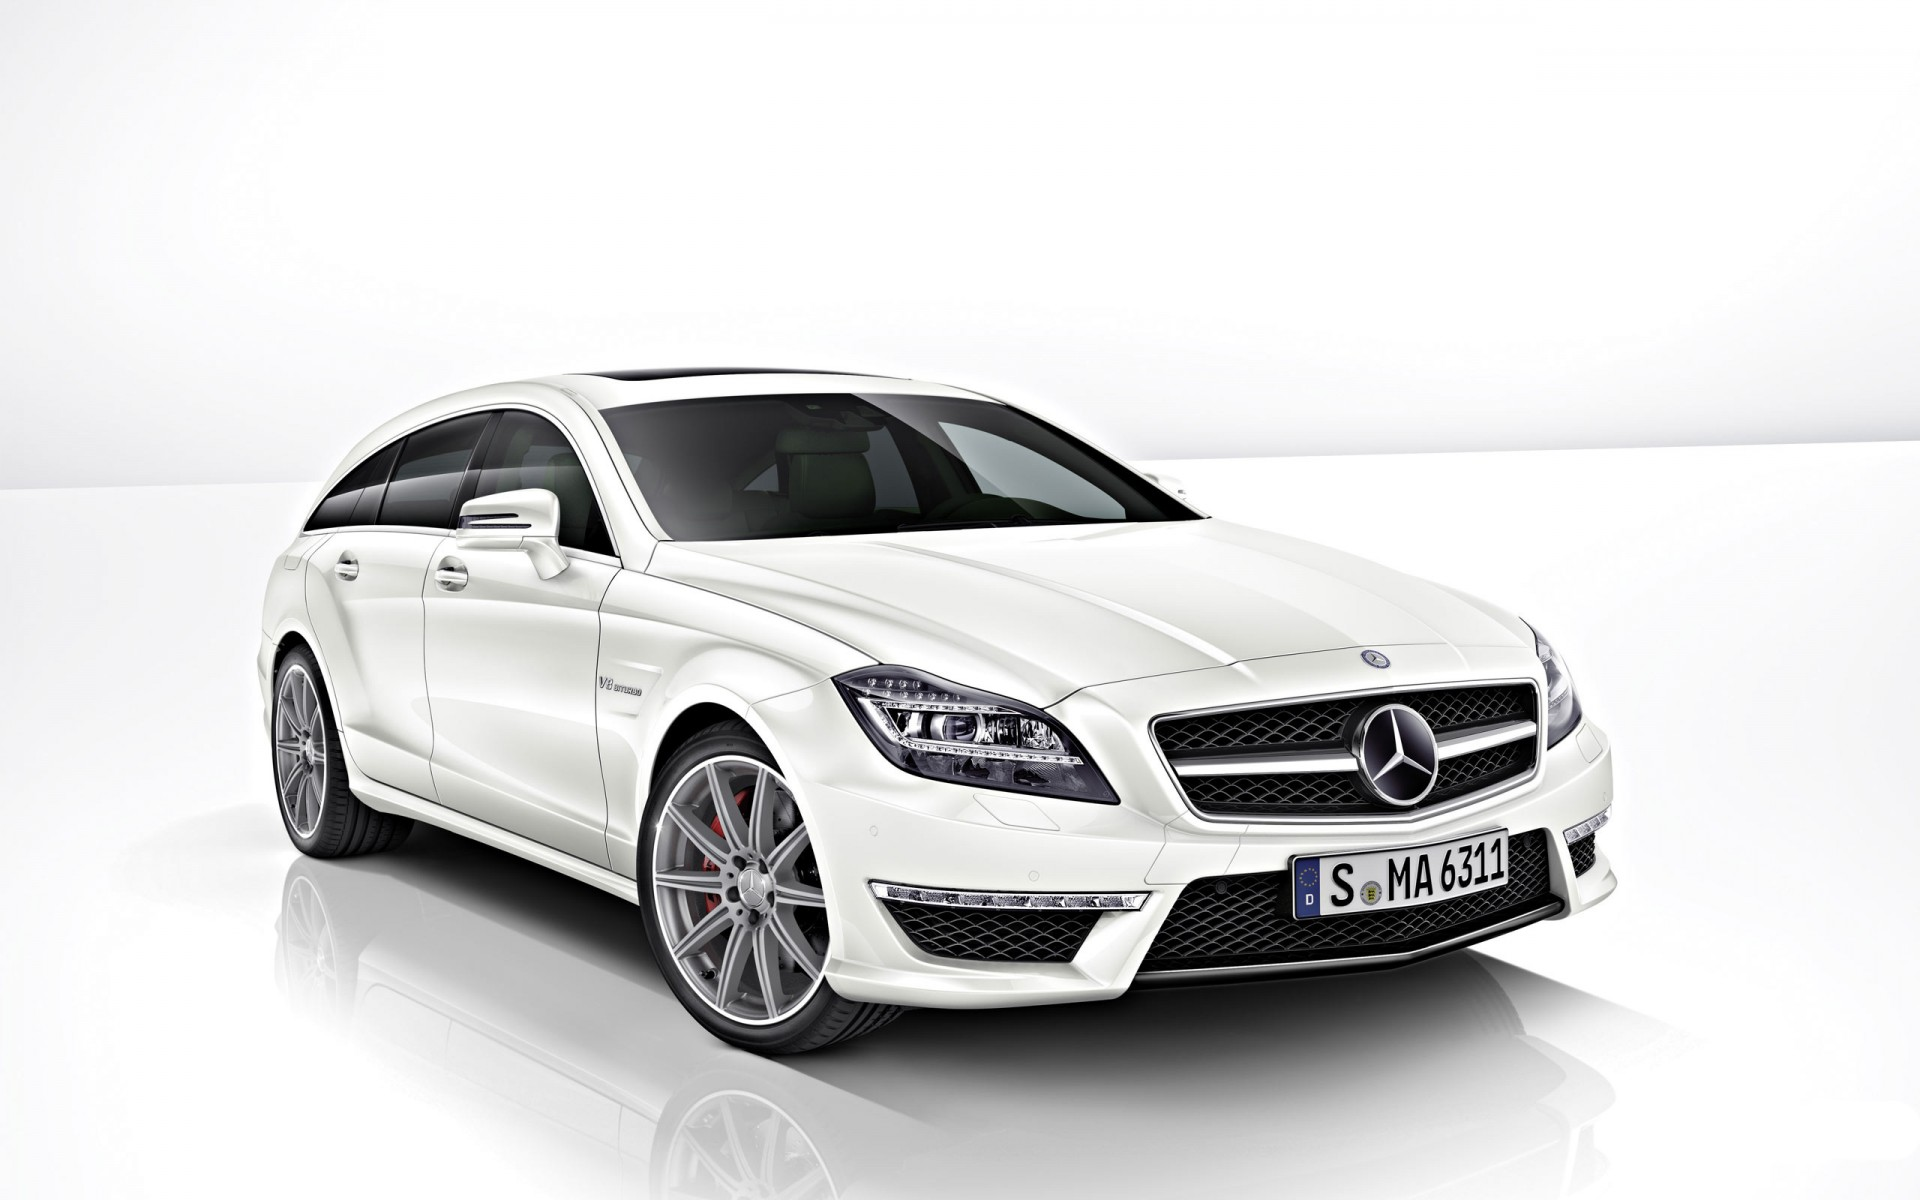 2014 mercedes benz cls 63 amg wallpaper in 1920x1200